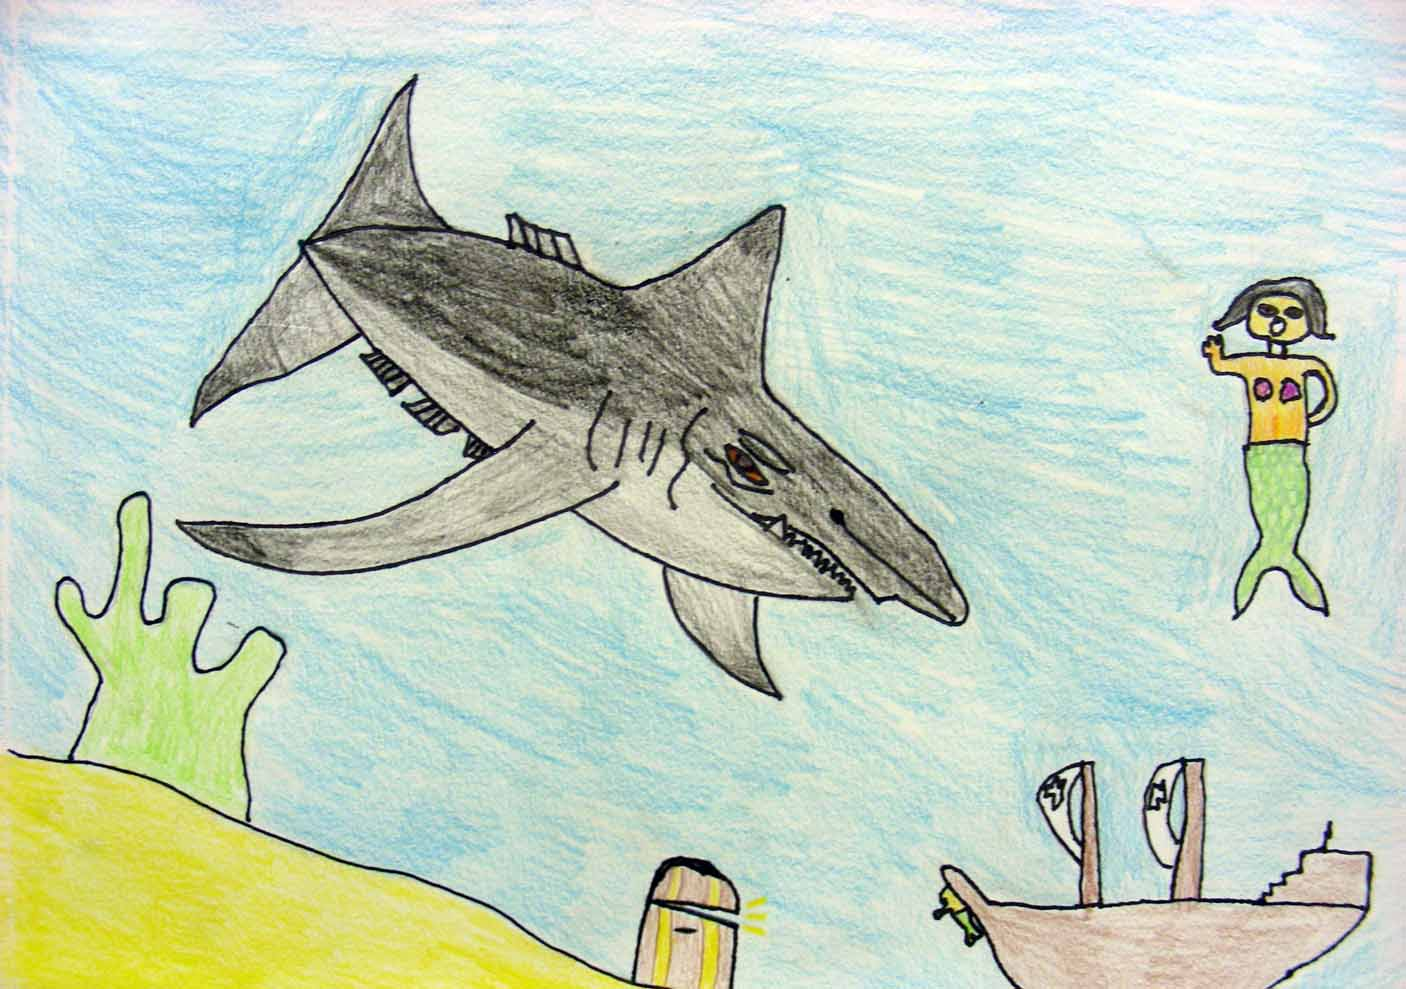 99 How To Draw Shark For Kids How To Draw A Shark Step By Step For